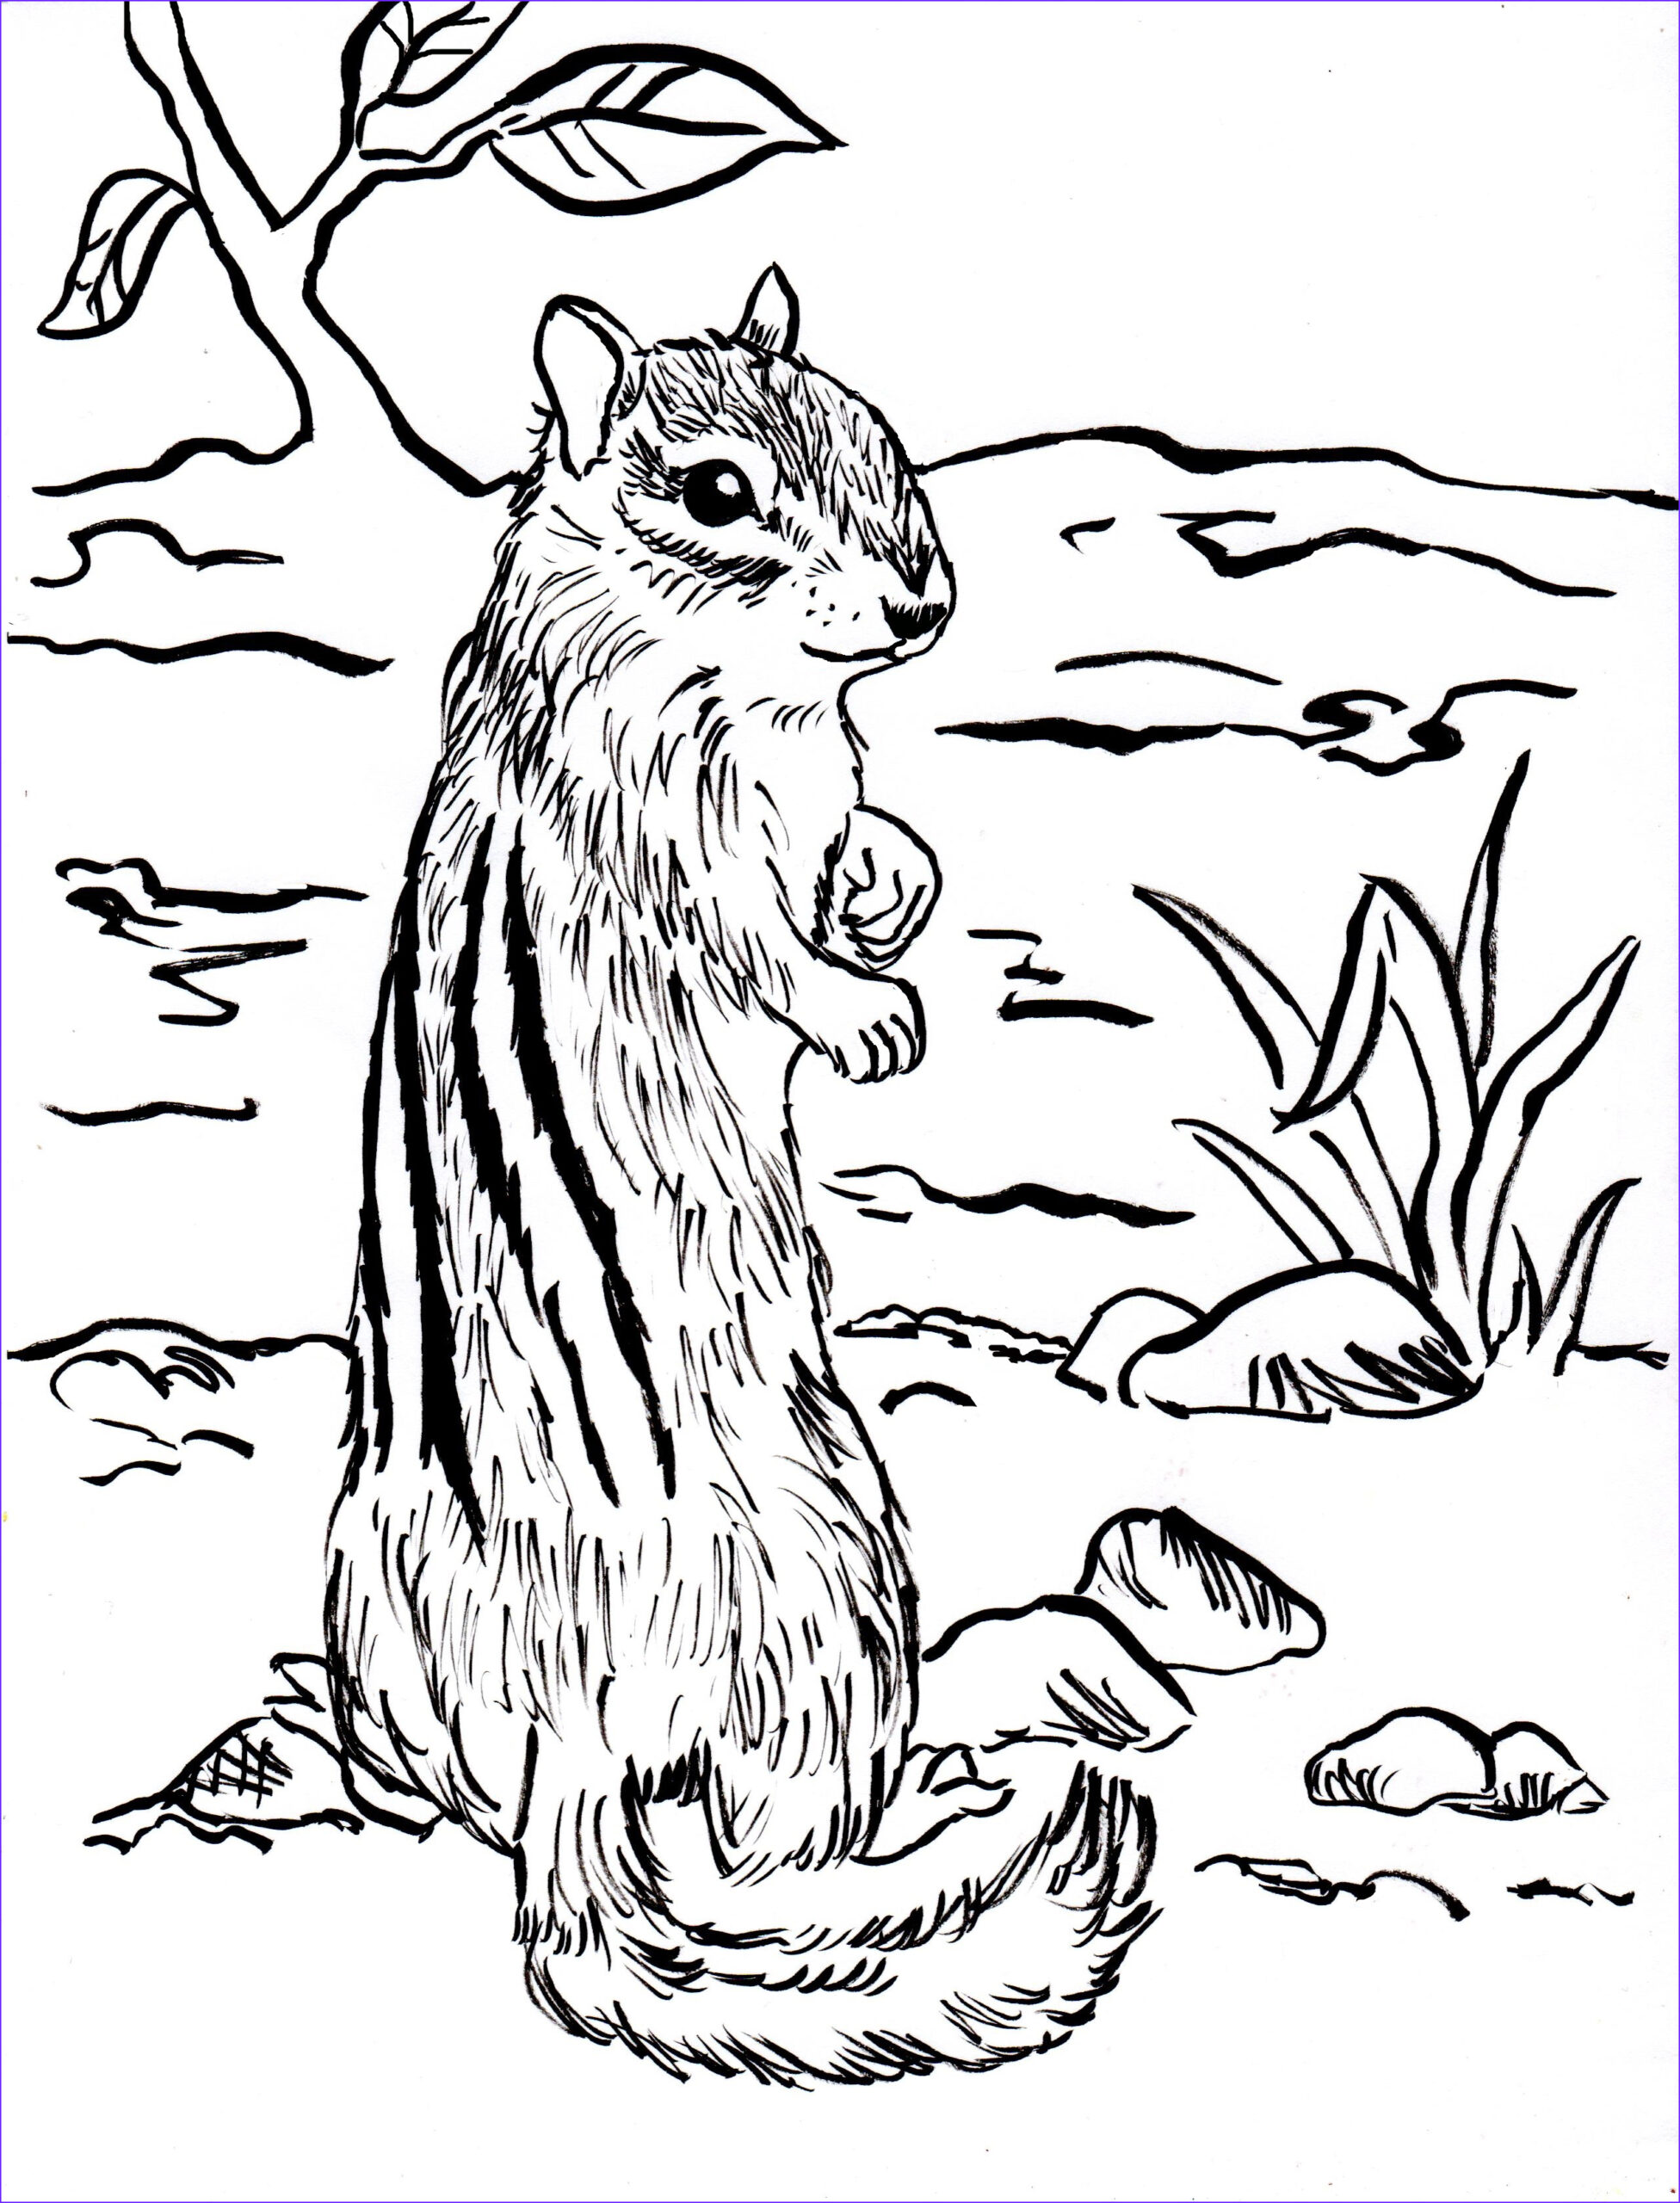 Chipmunk Coloring Pages Beautiful Stock Chipmunk Coloring Page Samantha Bell